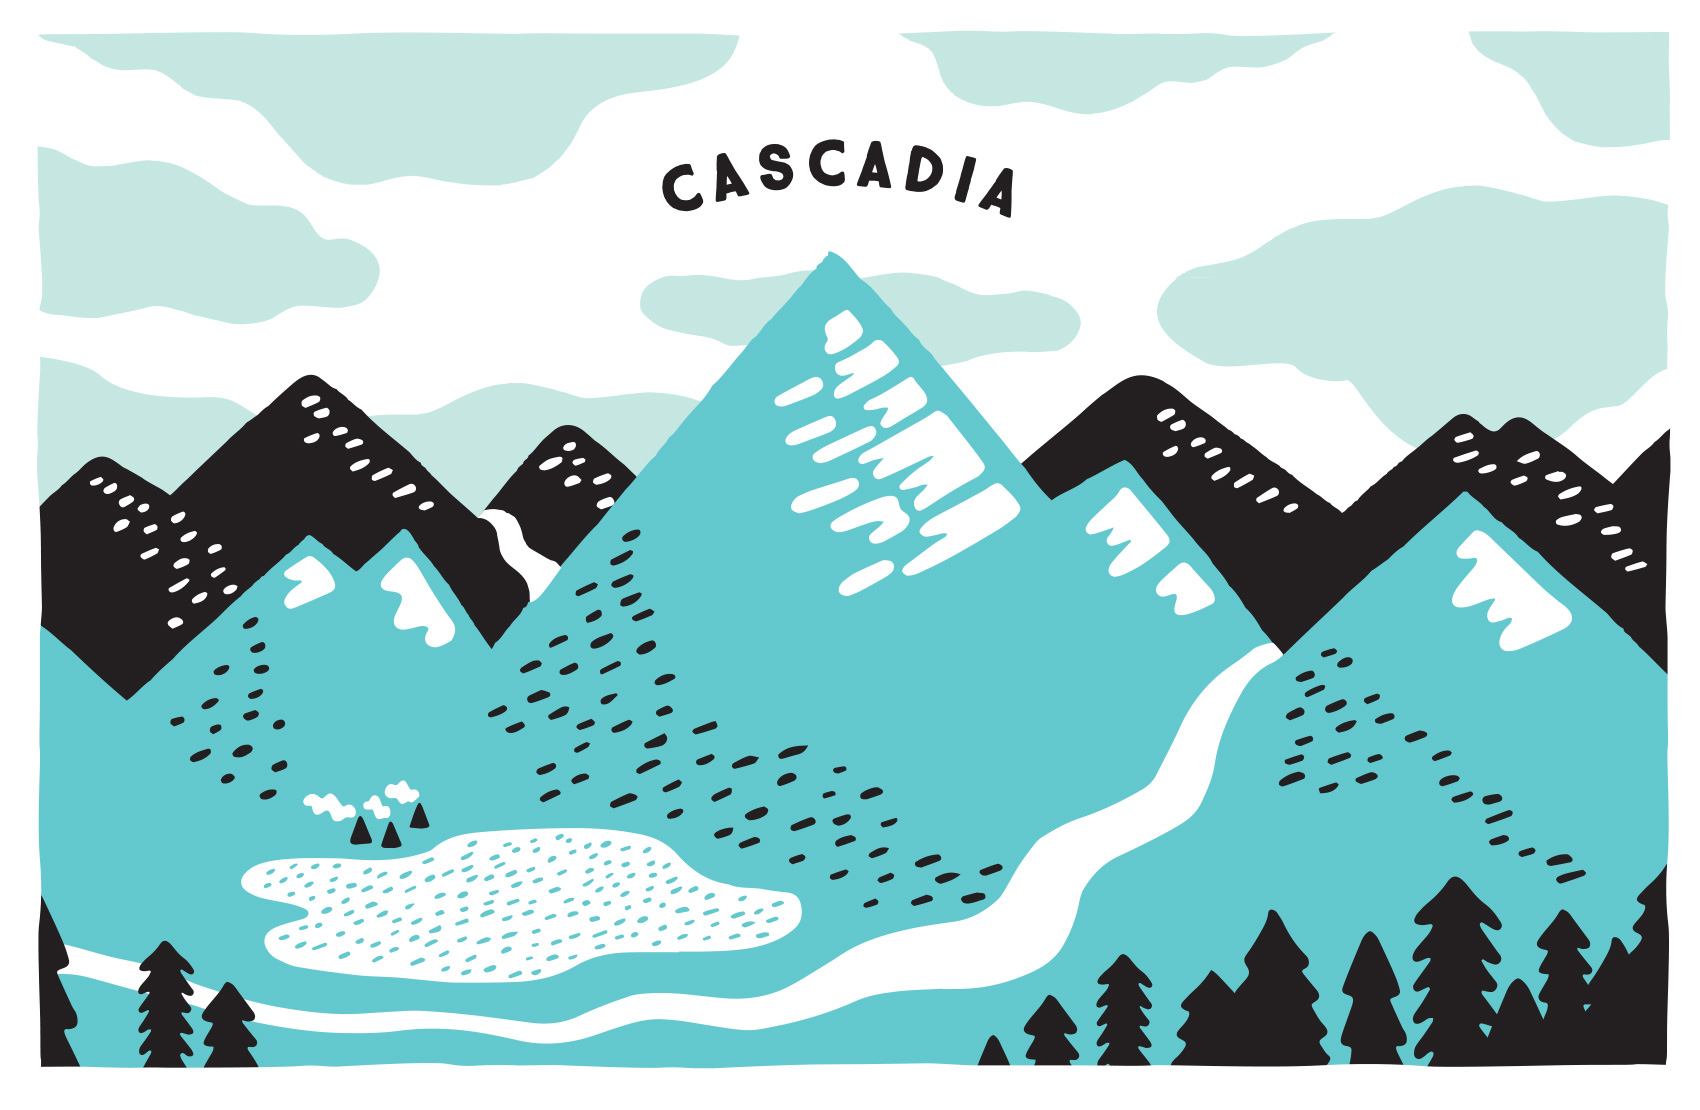 illustrated portrait of Cascadia with mountain ranges, river, lake and teepees